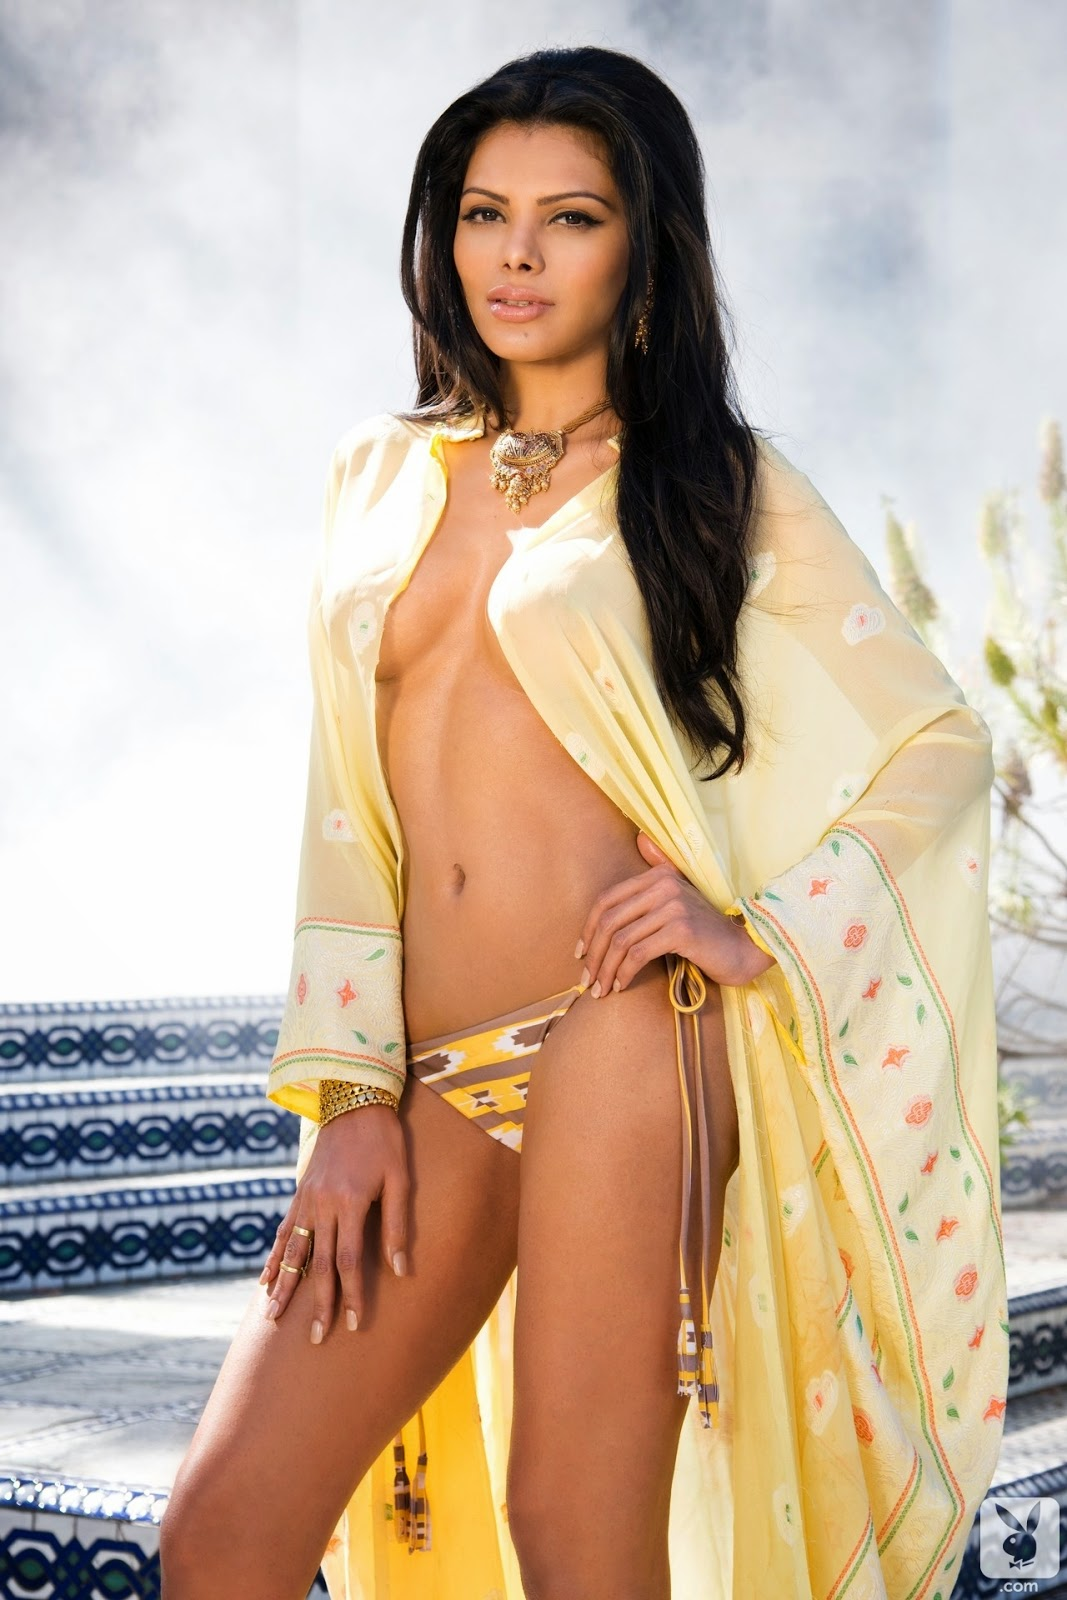 Indian Actress Full Nude